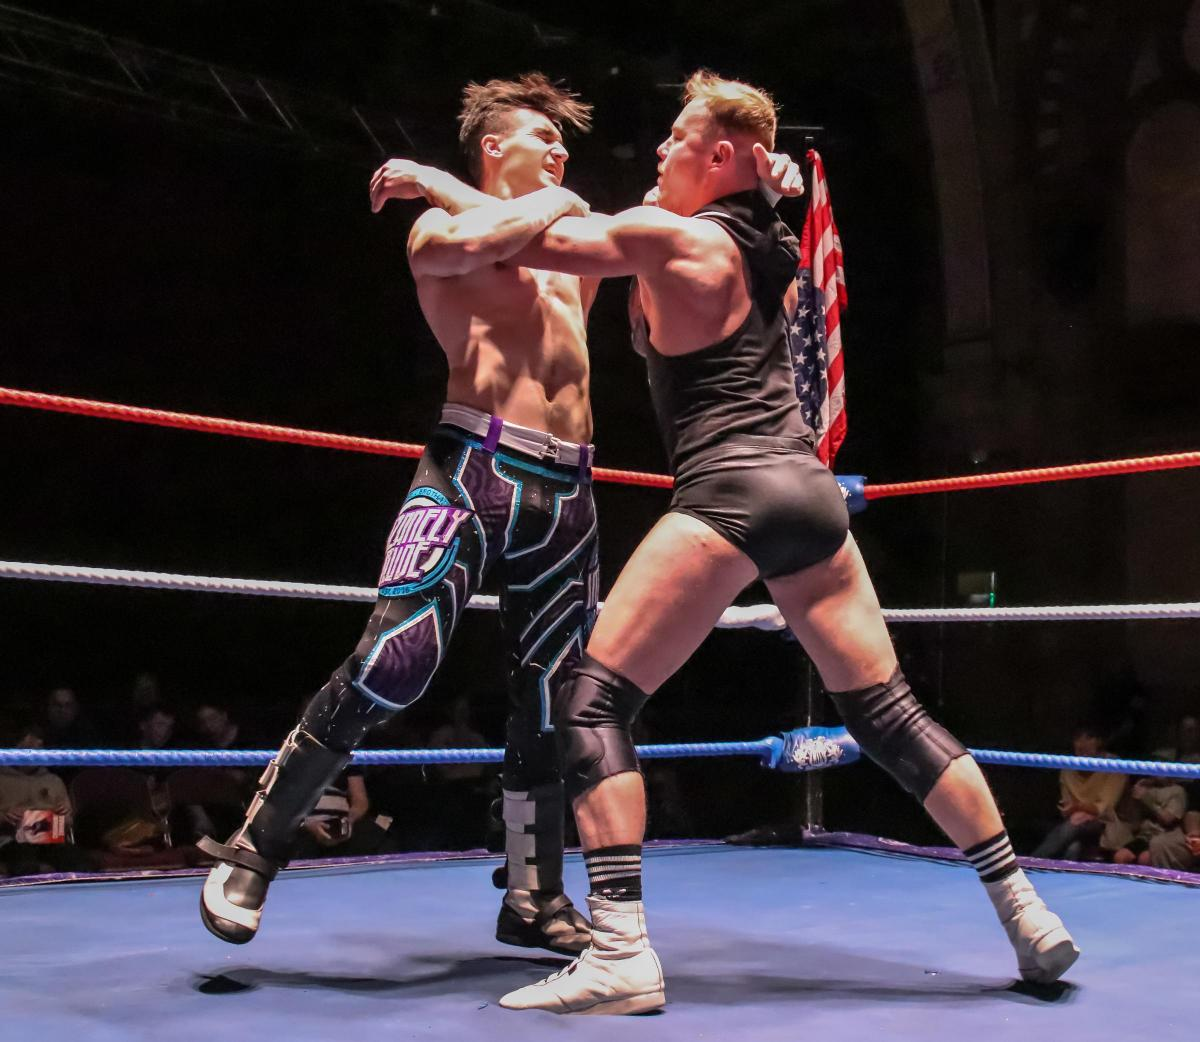 Action packed professional wrestling coming to Medina